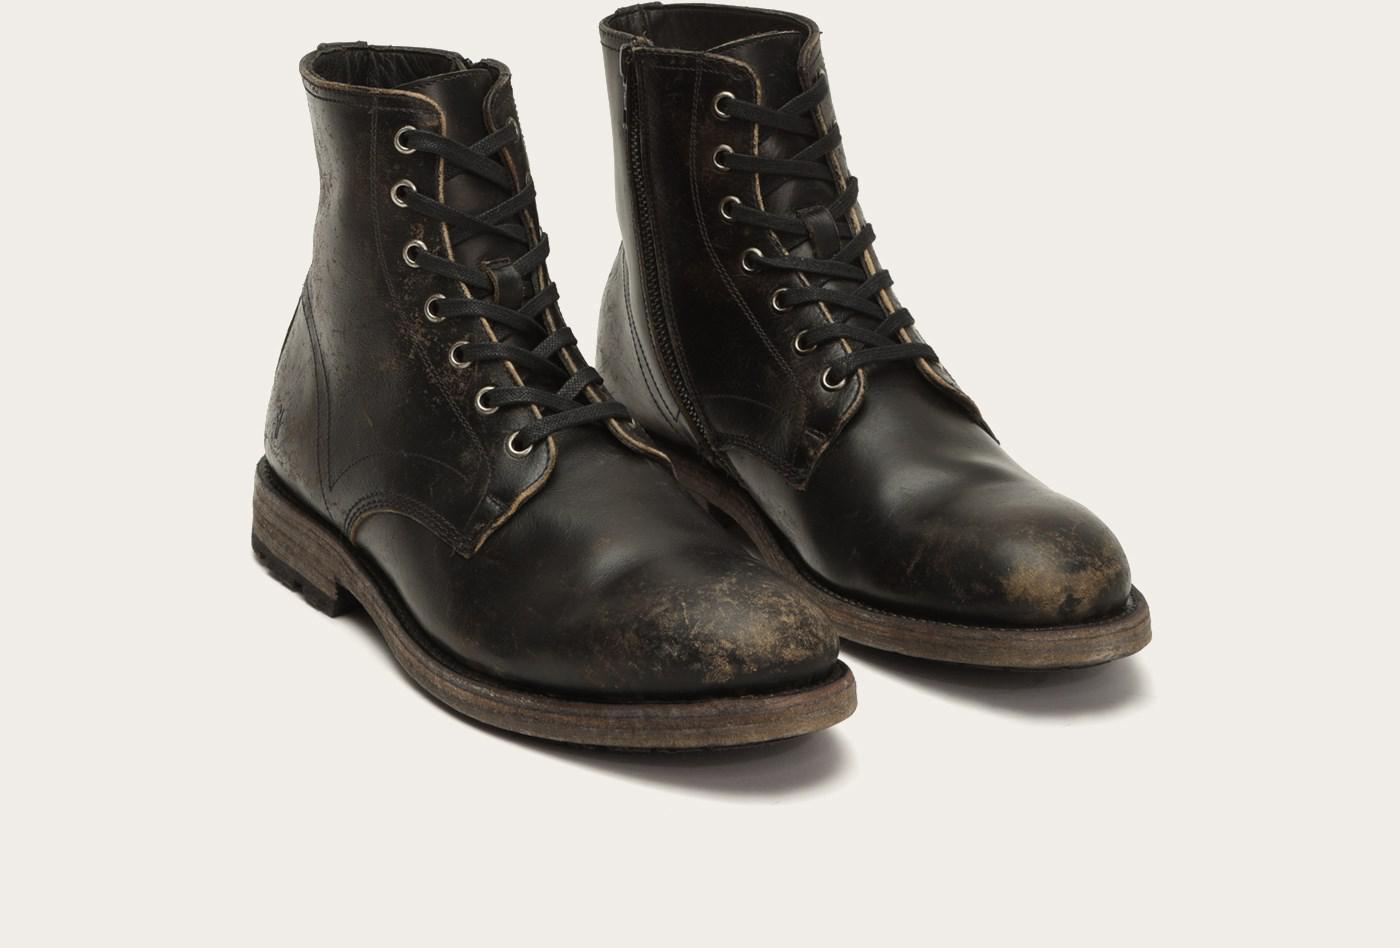 Frye - Black Bowery Lace Up for Men - Lyst. View fullscreen